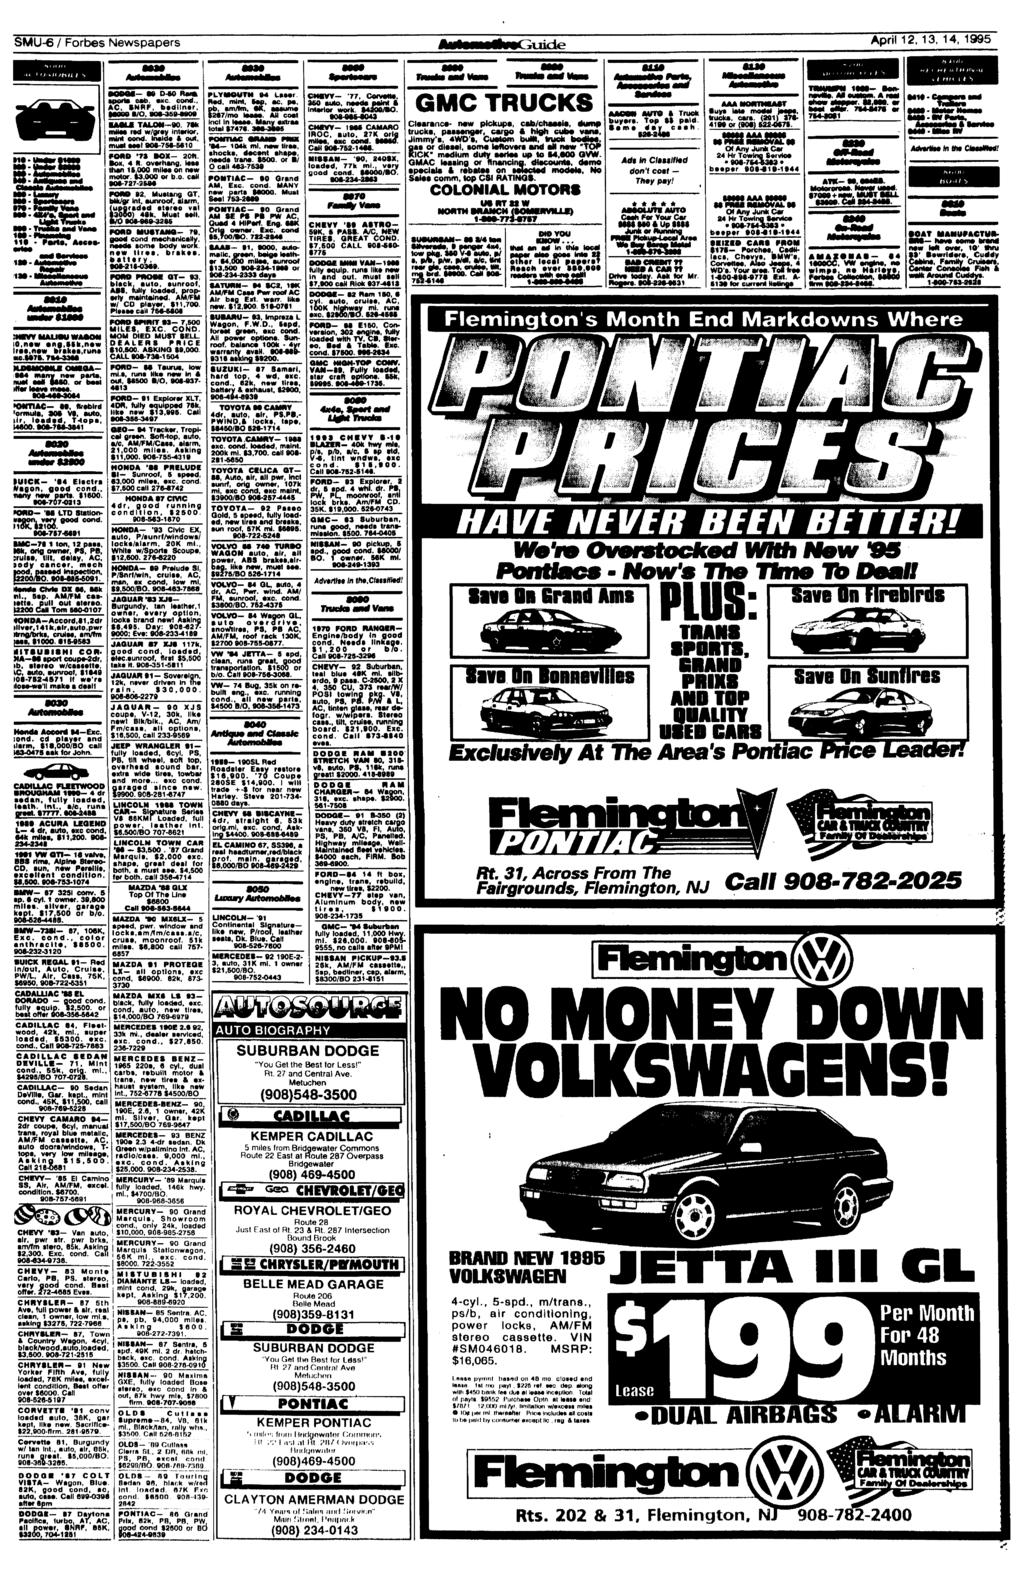 See Candidate Photos Bios More On Pages A 8 9 To Subscribe Call Air Conditioning Four Season System Wiring Diagram C K Models For 1979 Gmc Light Duty Truck Series 10 35 Smu 6 Forbes Newspapers April 1213 14 1995 188 Aeces